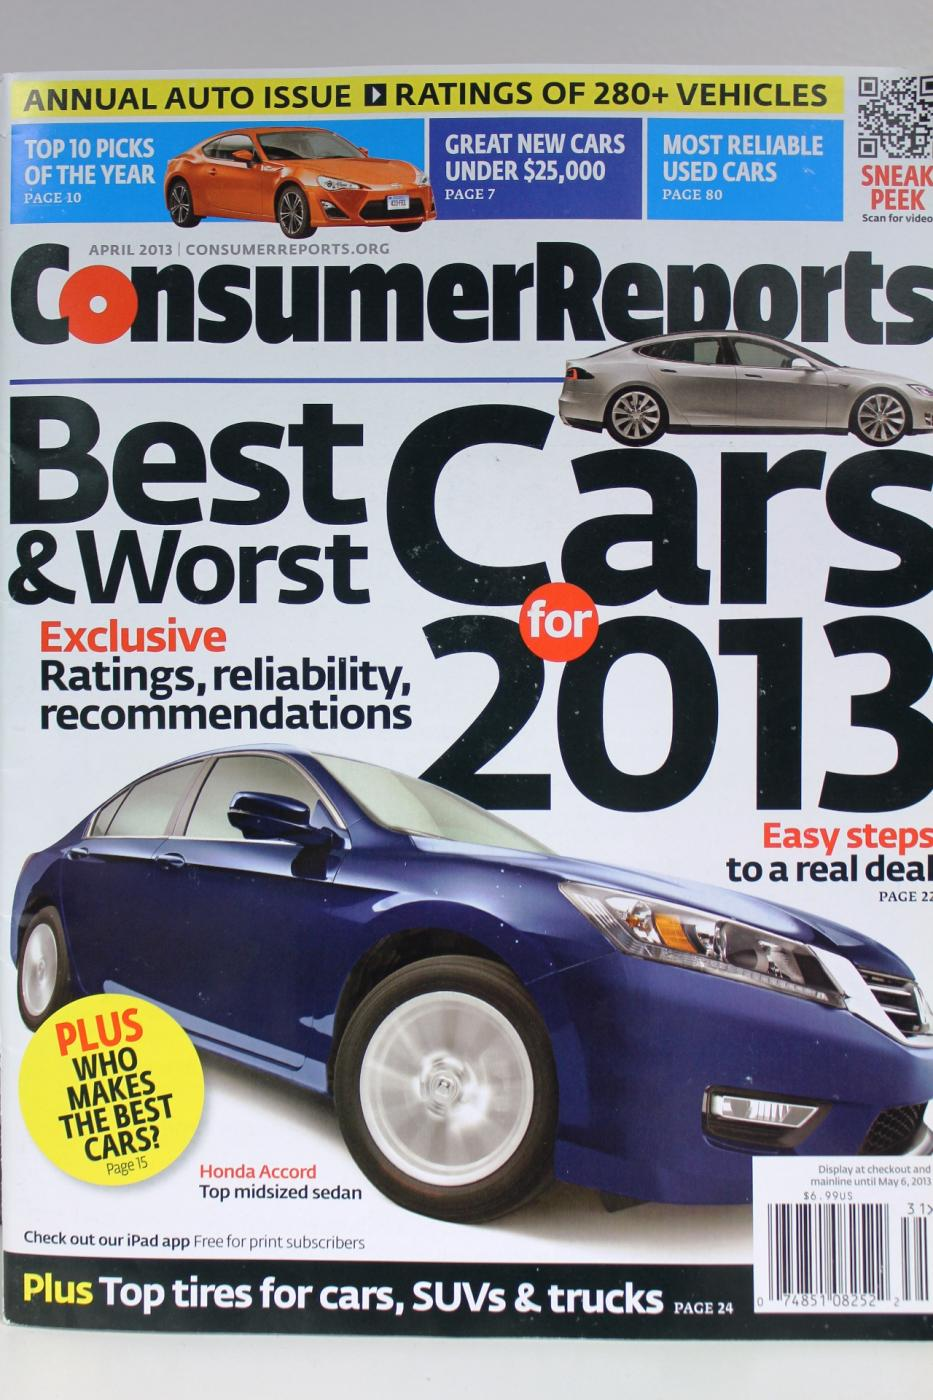 Brown\'s Car Stores | Best Cars of 2013 - Brown\'s Has You Covered!